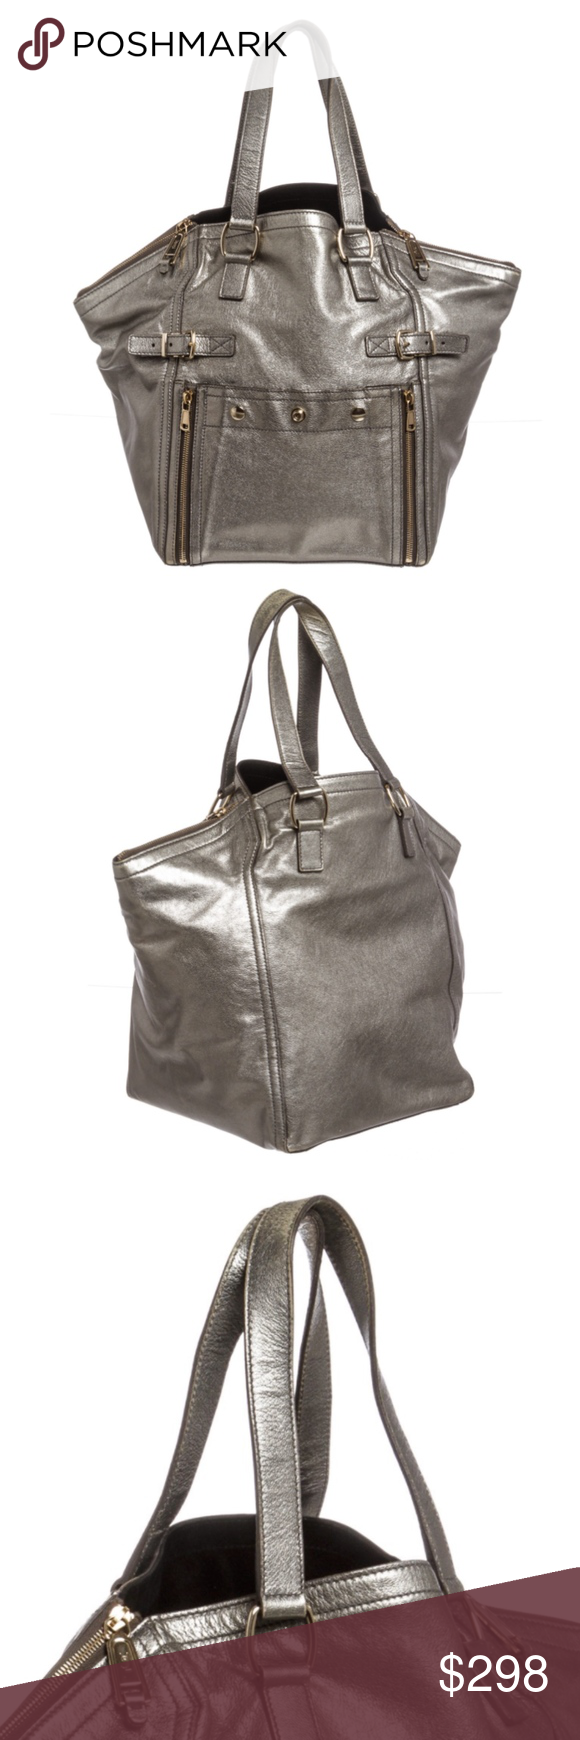 Yves Saint Laurent Silver Leather Downtown Tote Previously loved YSL ... 27a5f88a60e1c